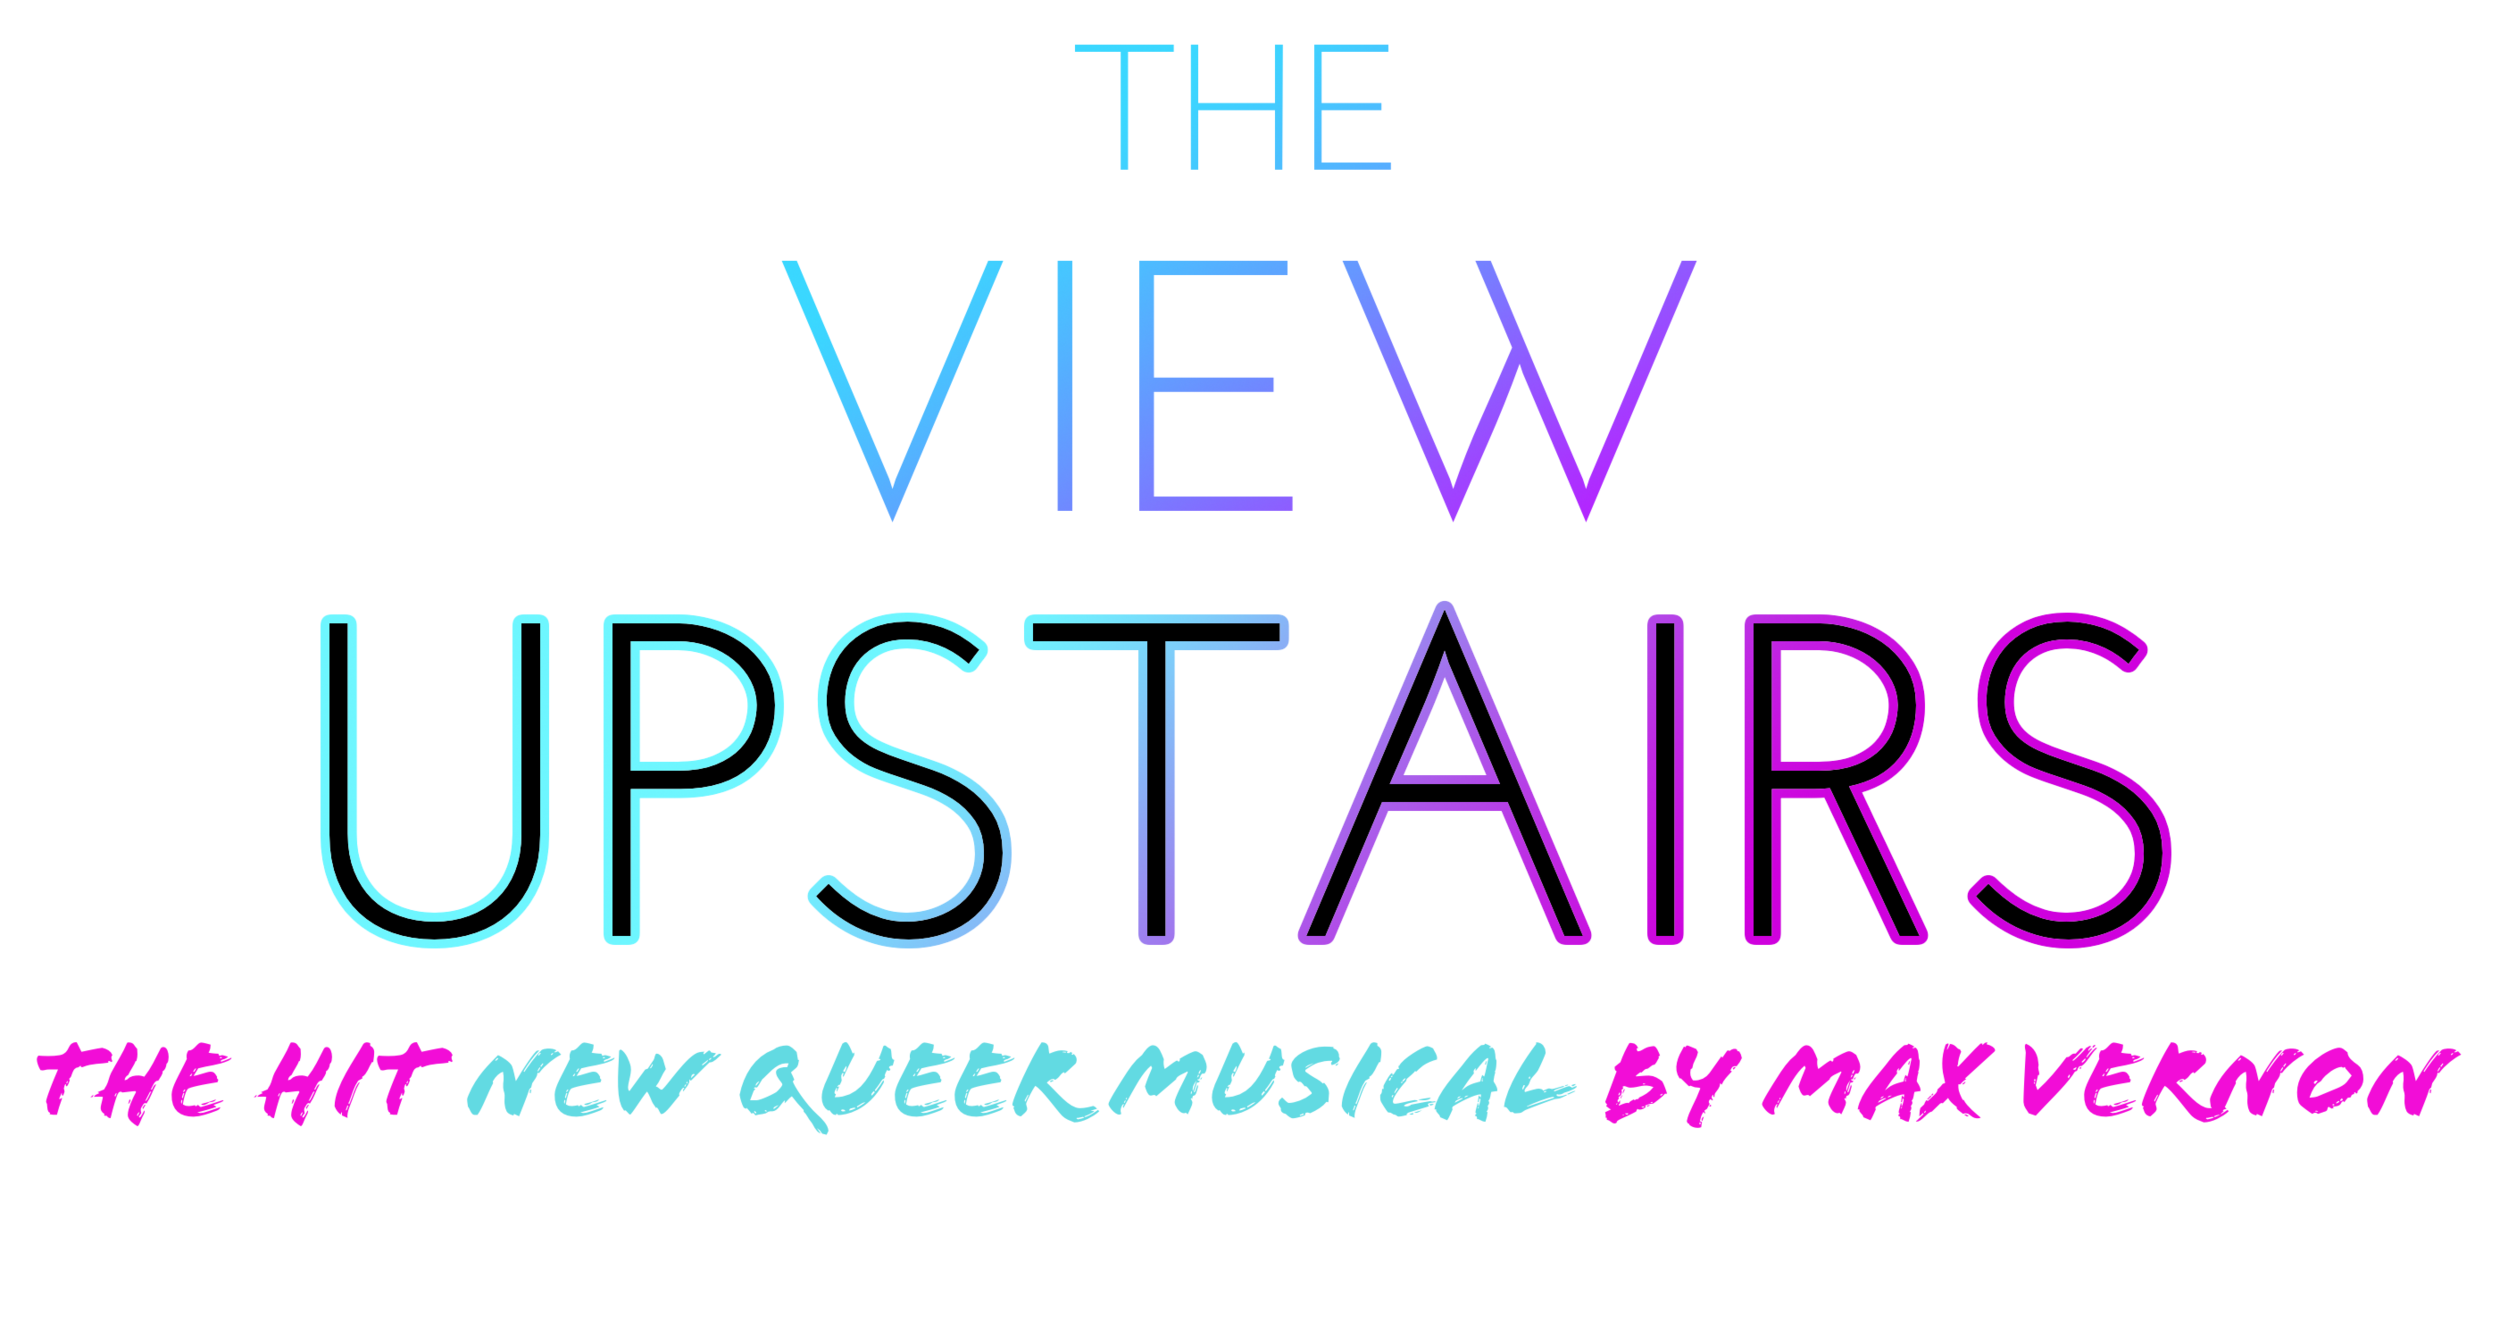 The View UpStairs Overlay.png